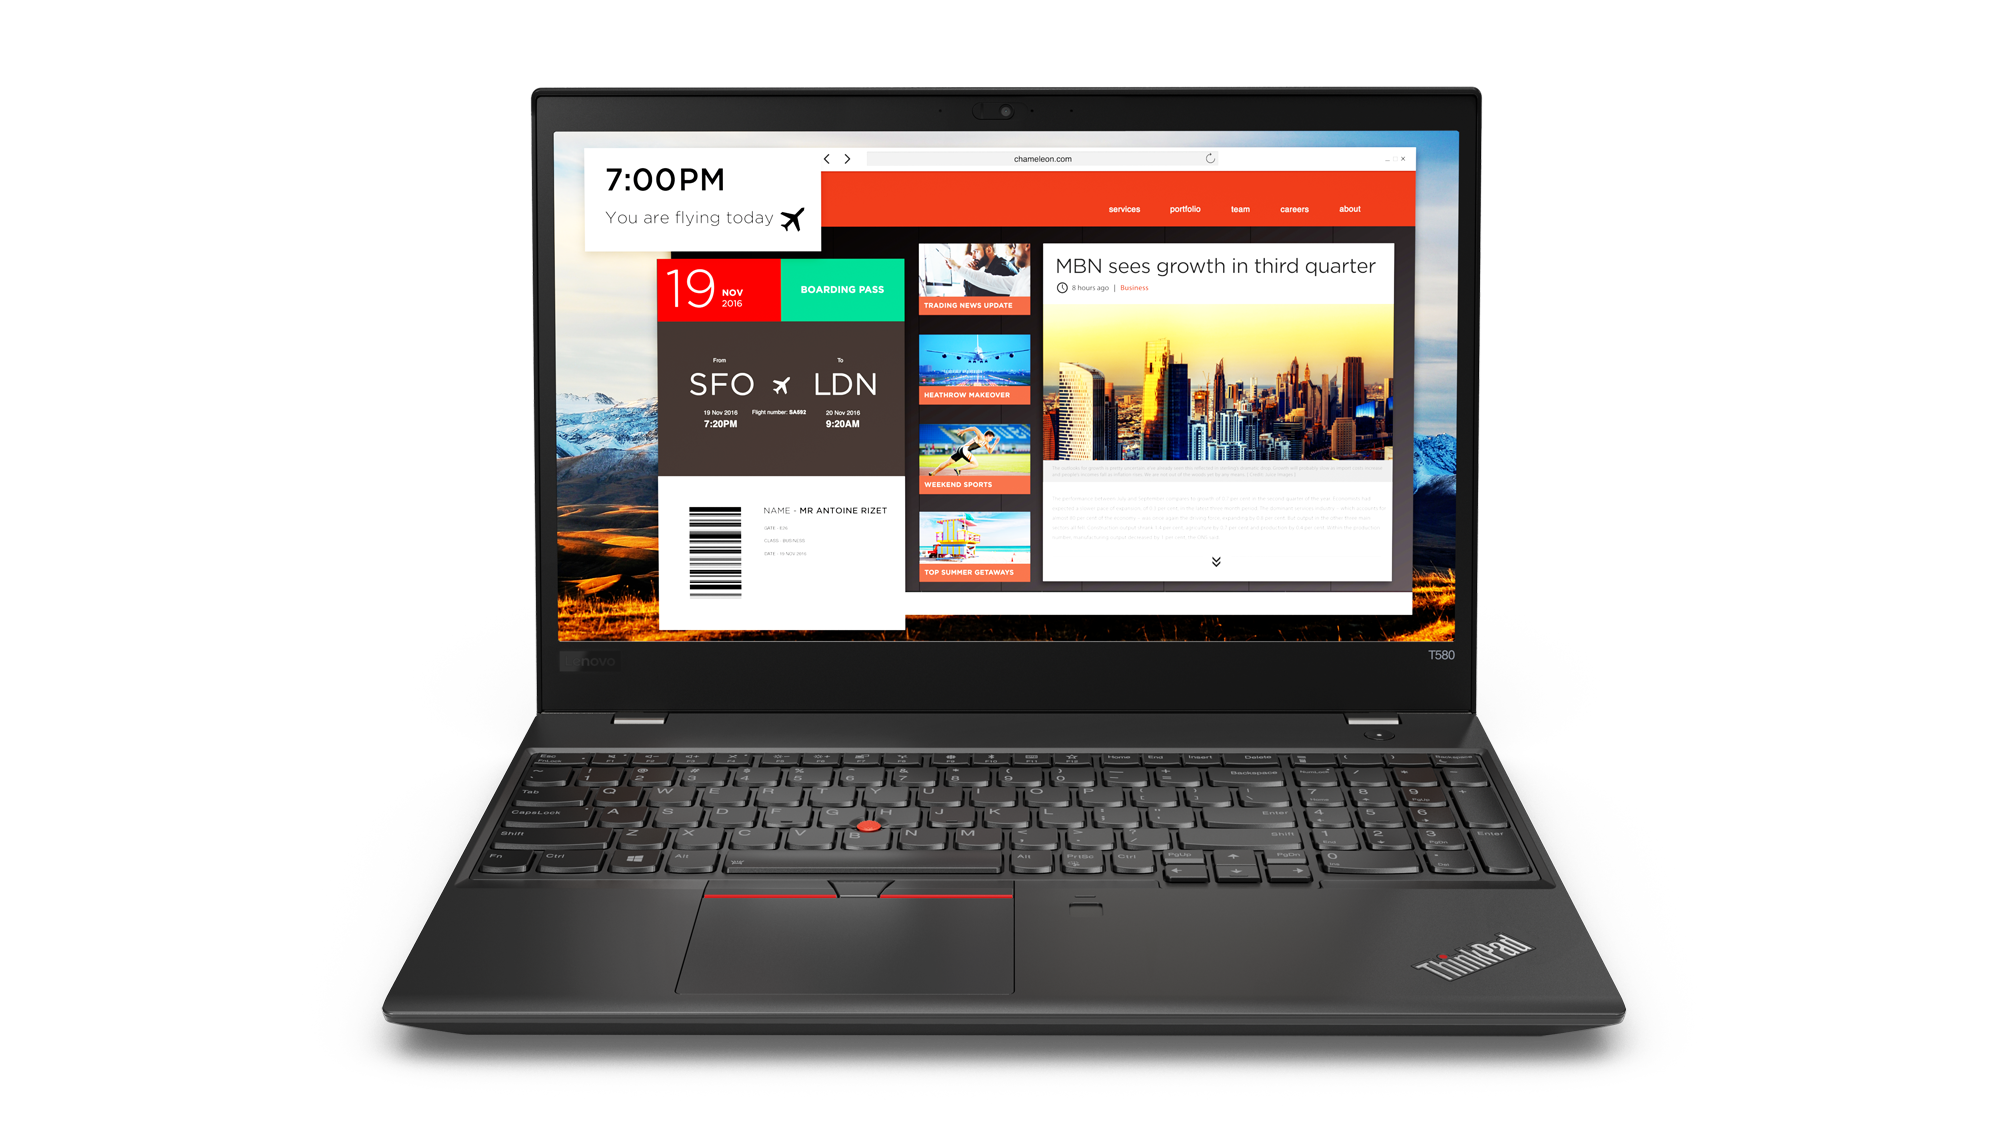 20L90024MC Lenovo Thinkpad T580 15.6FHD/i7-8550U/256SSD/8GB/ Intel HD /4G/W10P/černý